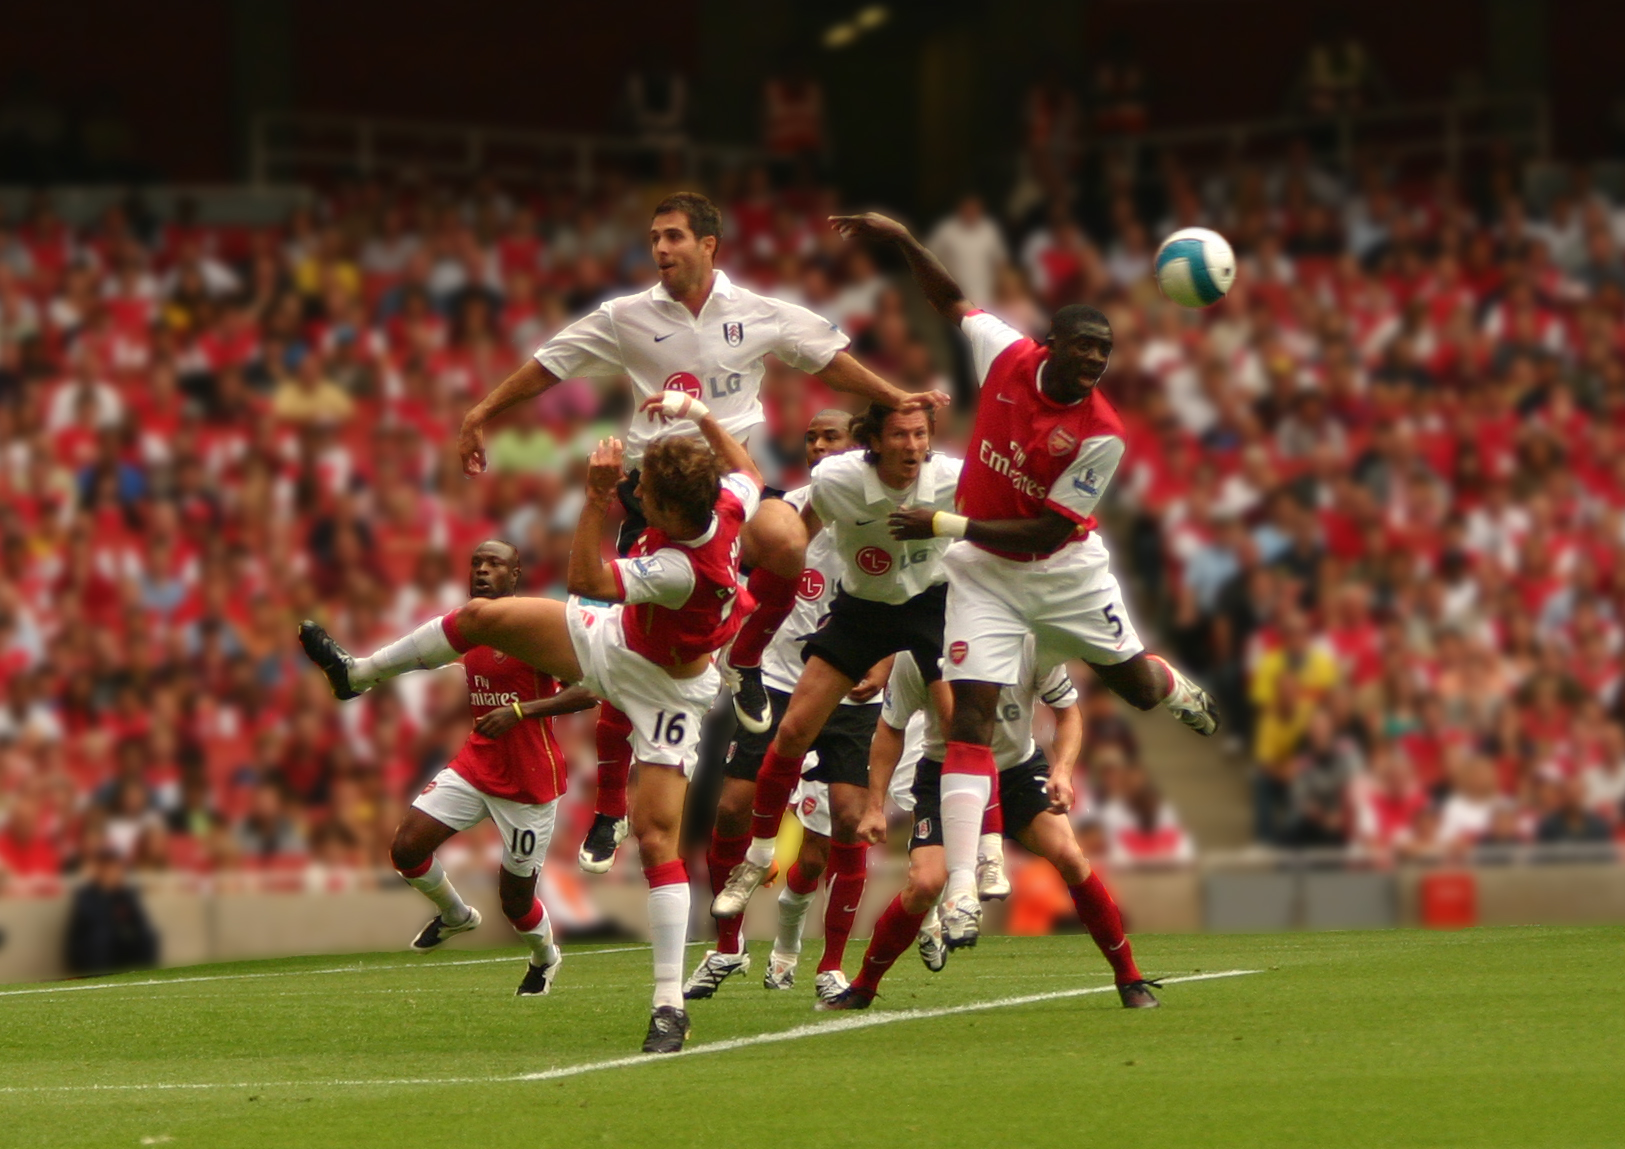 Photo of a crowd of football players leaping to header a ball, featuring Kolo Touré